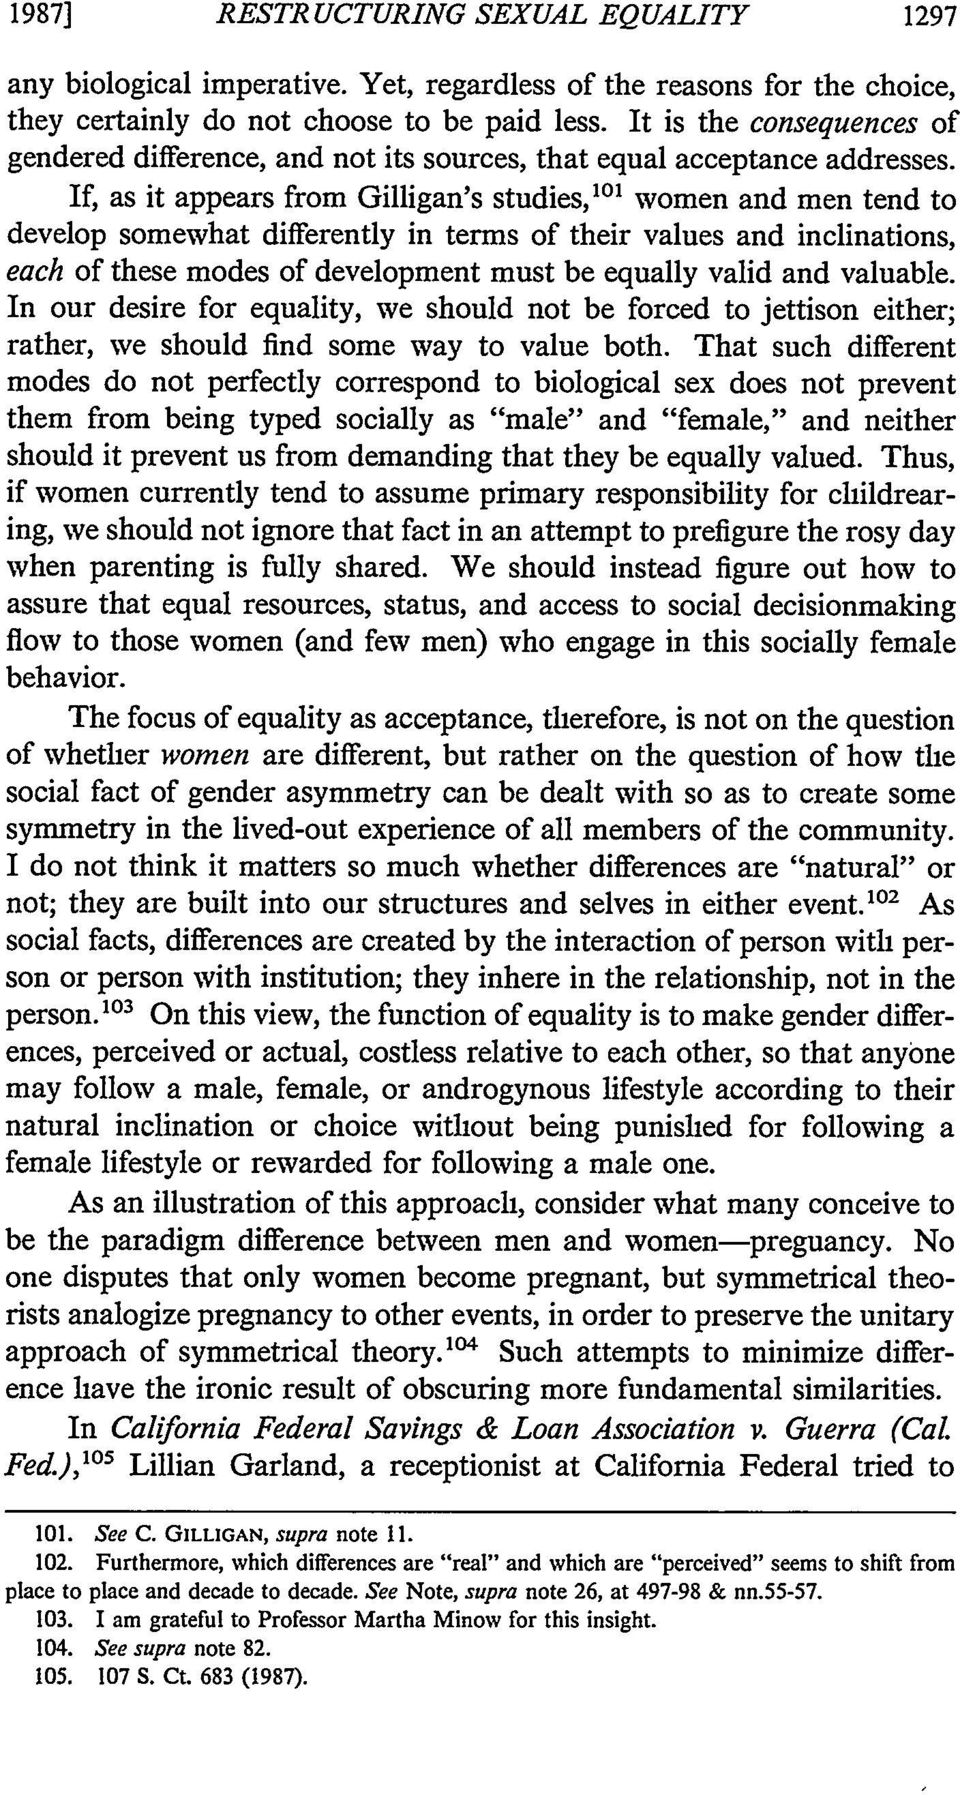 If, as it appears from Gilligan's studies, 10 ' women and men tend to develop somewhat differently in terms of their values and inclinations, each of these modes of development must be equally valid